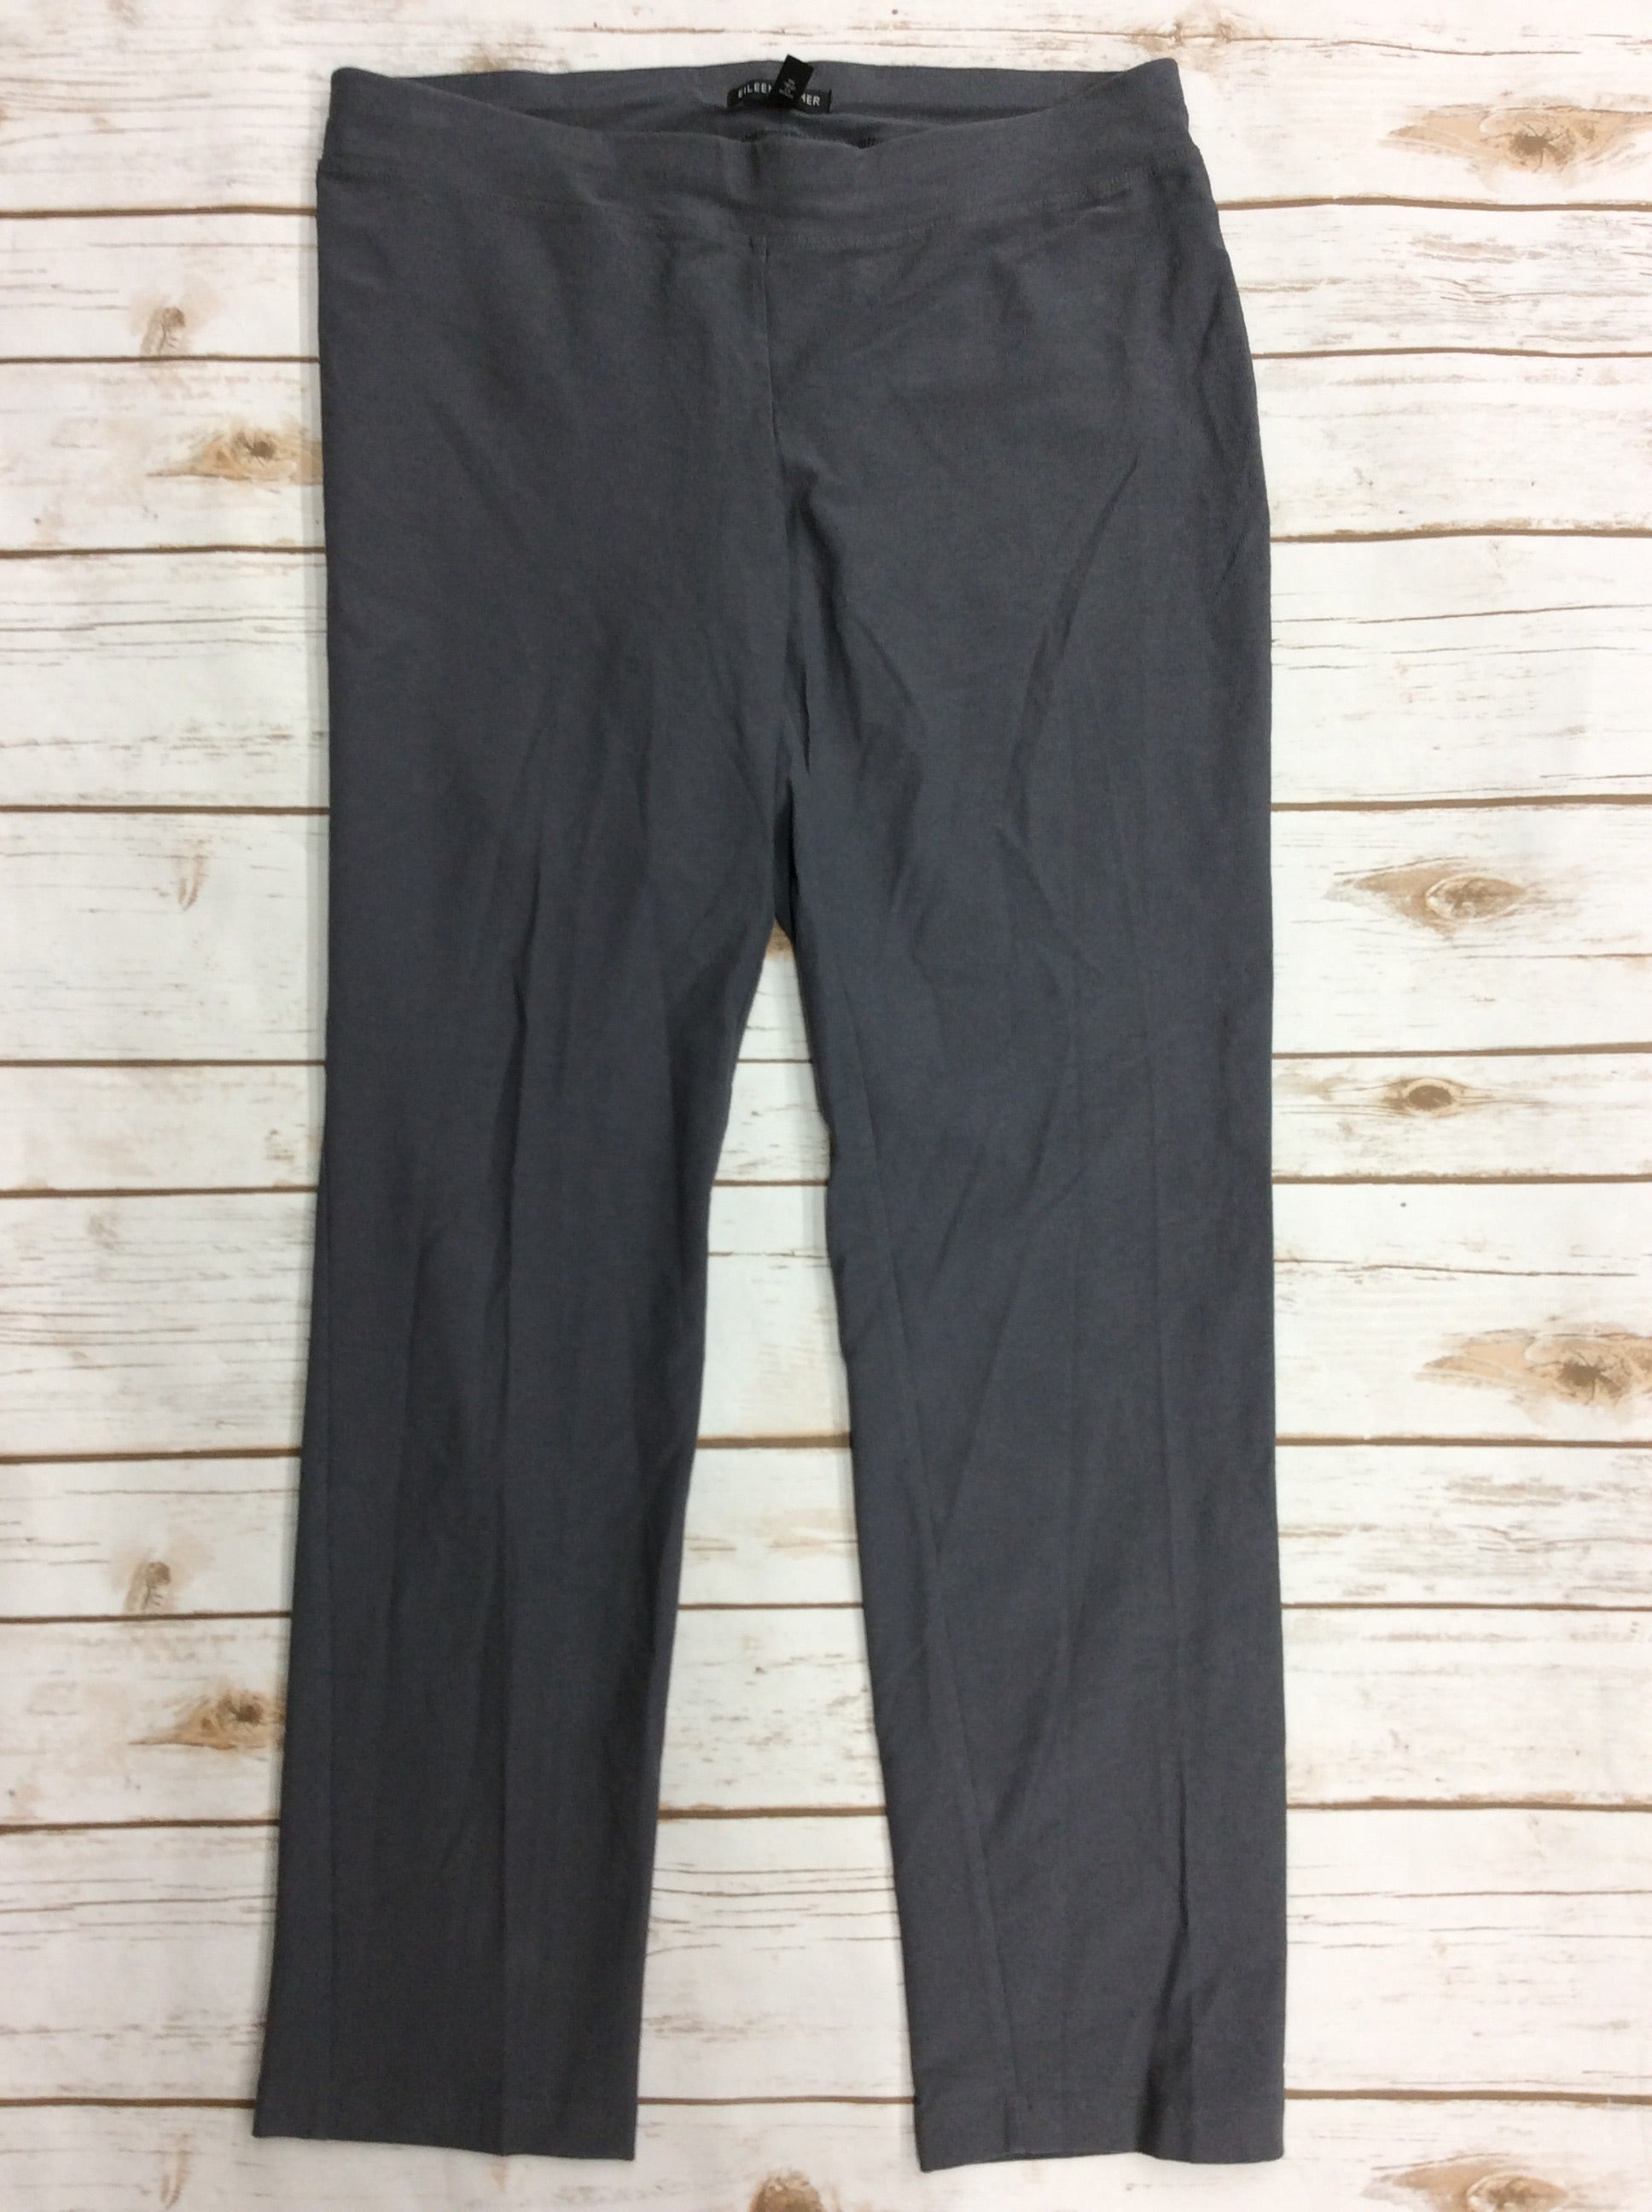 Primary Photo - BRAND: EILEEN FISHER <BR>STYLE: PANTS <BR>COLOR: GREY <BR>SIZE: S <BR>SKU: 220-22012-34108